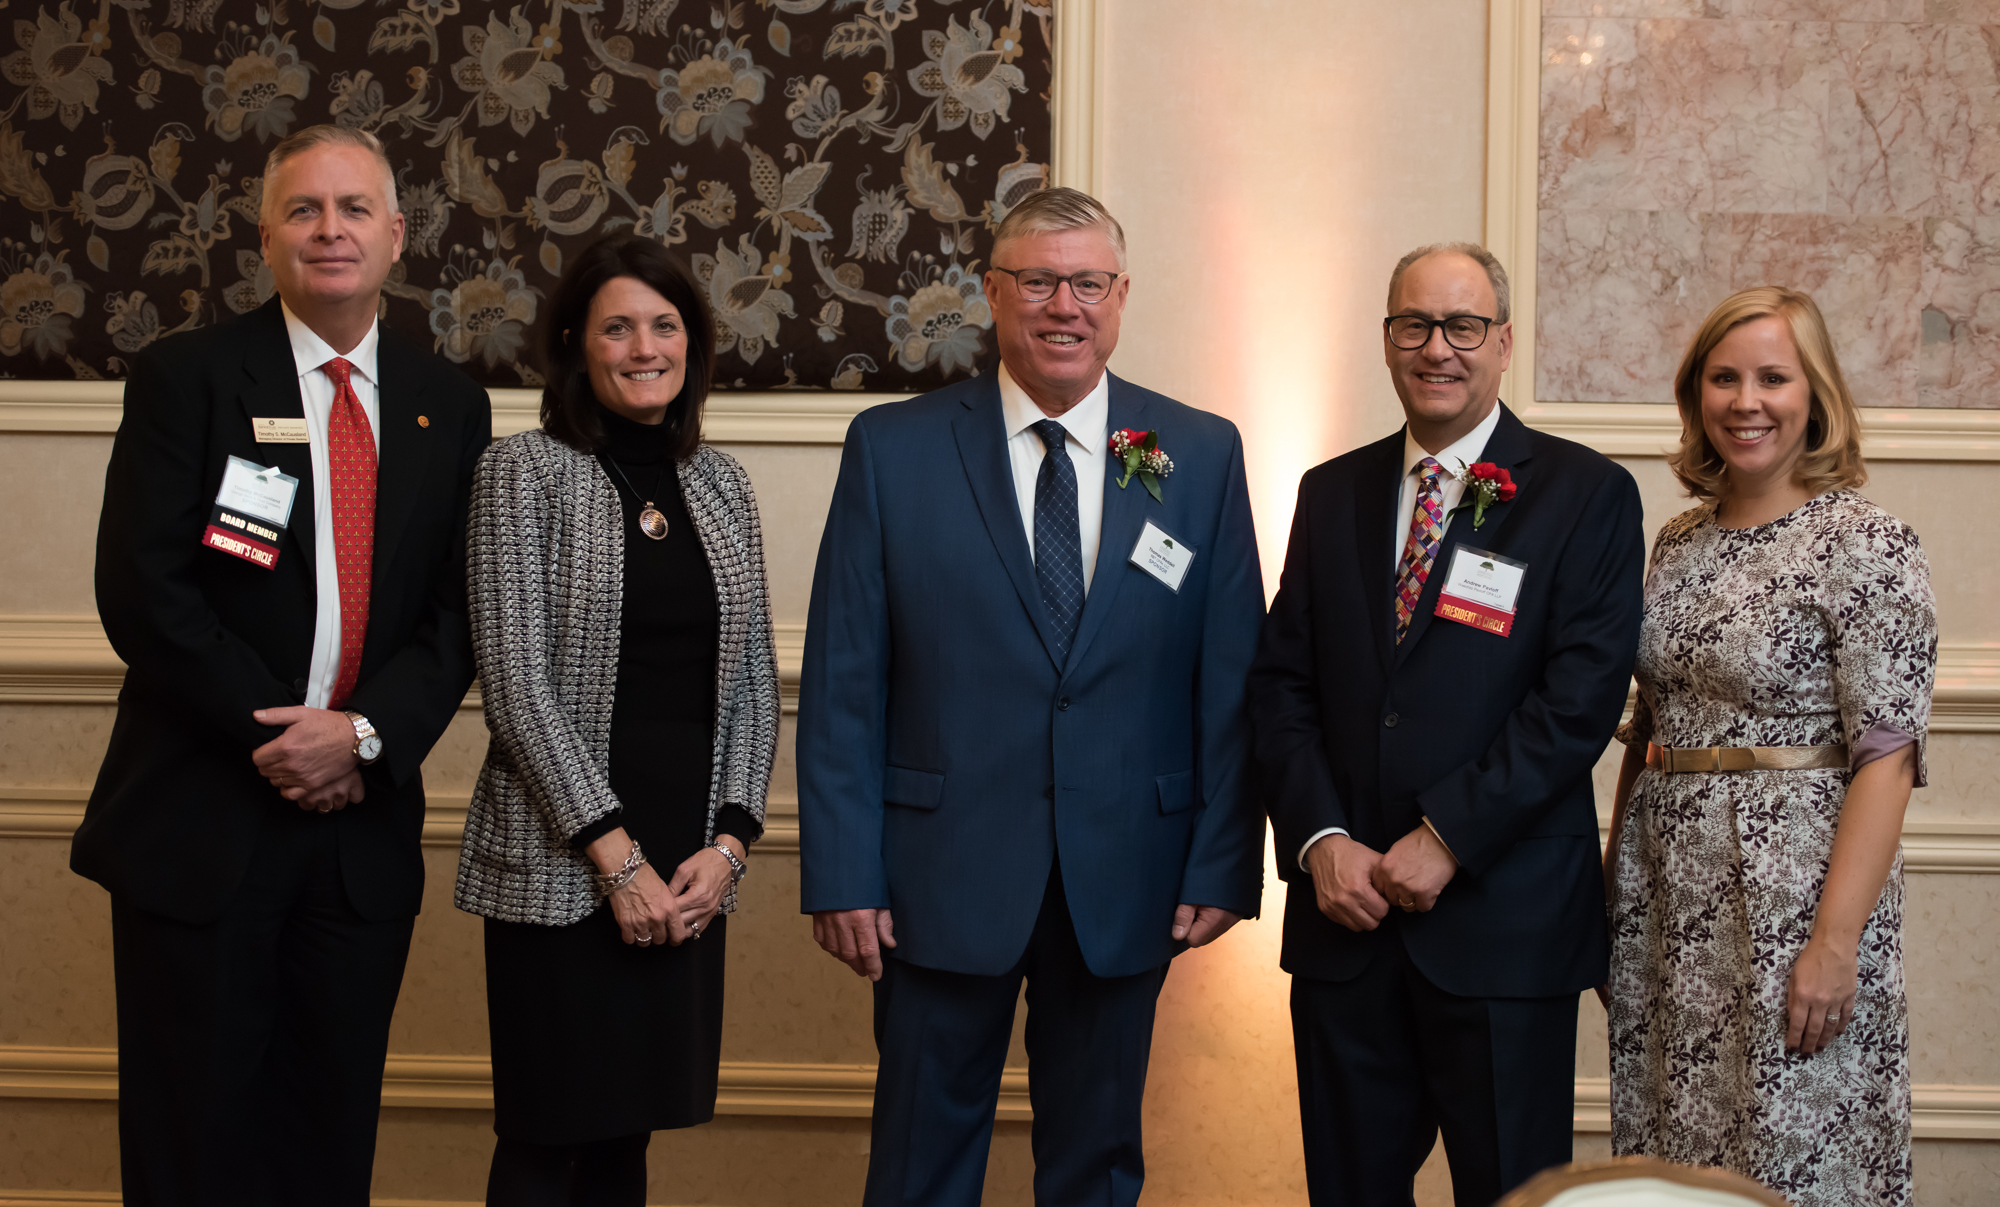 2018 Annual Reception Honorees